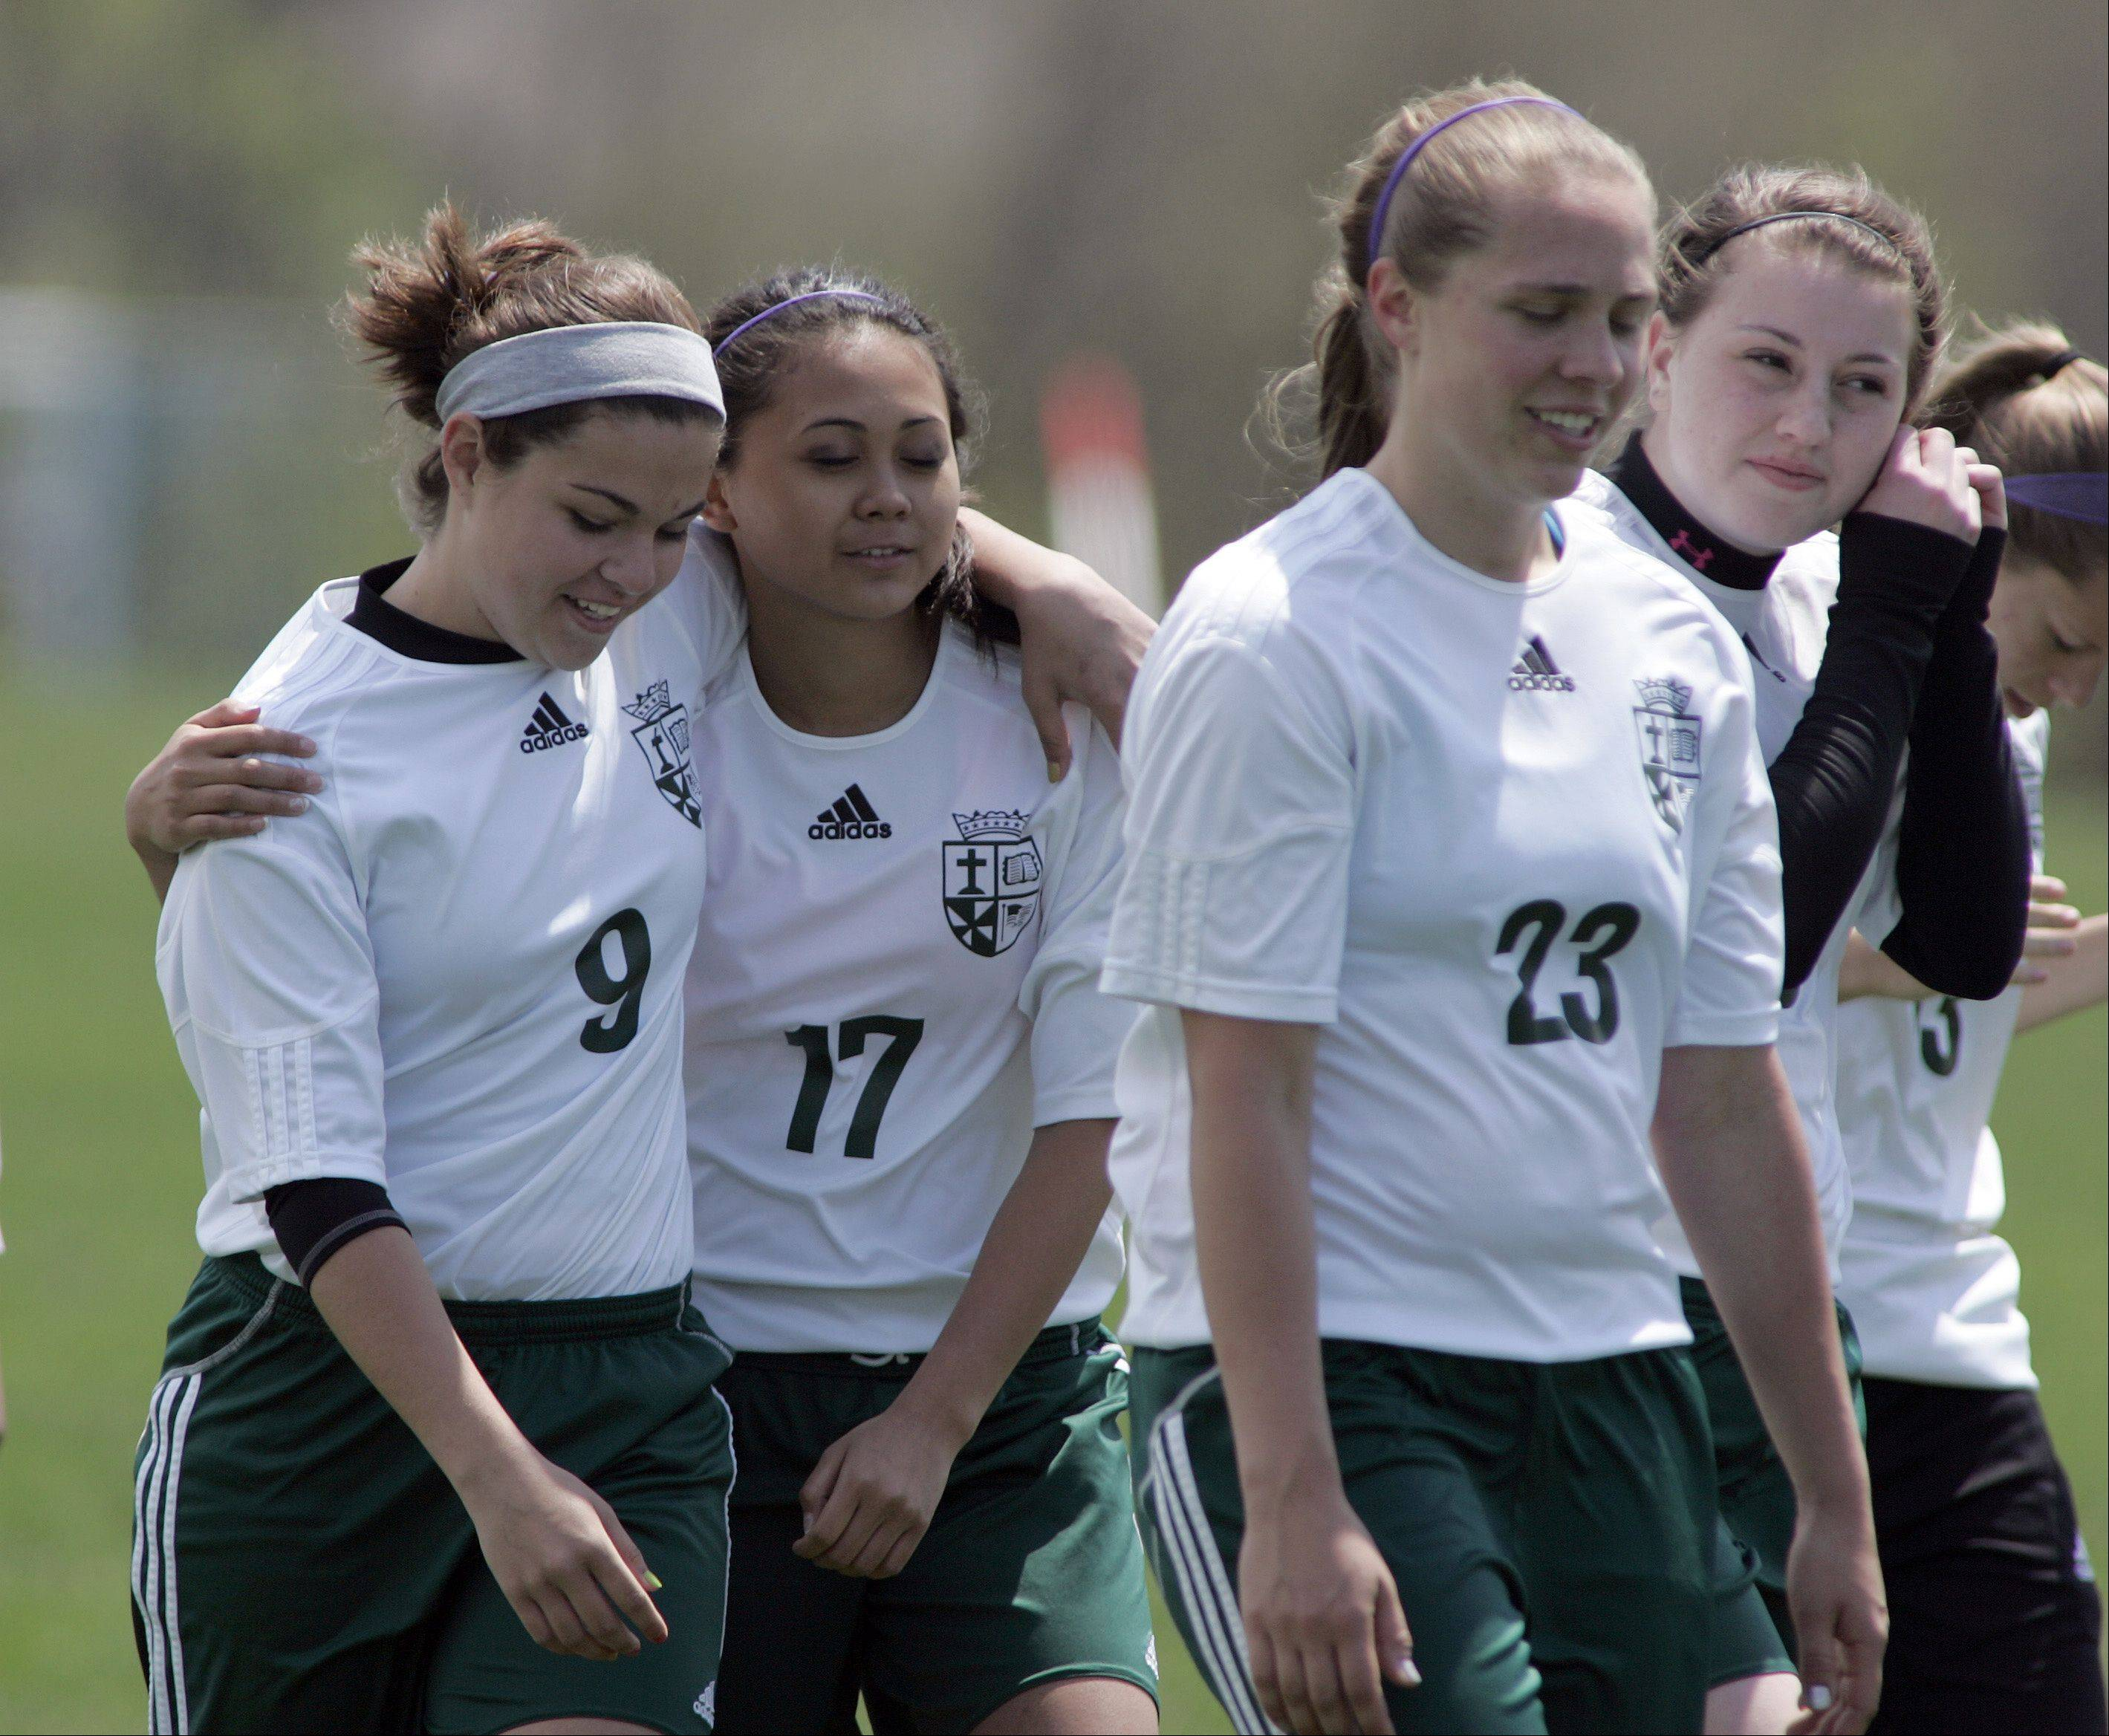 St. Edward�s girls soccer team returns to the sideline after beating Westminster Christian in the Class 1A Westminster regional final Saturday. Alyssa Saunders (9) and Stephanie Manghas (17) celebrate in the middle.